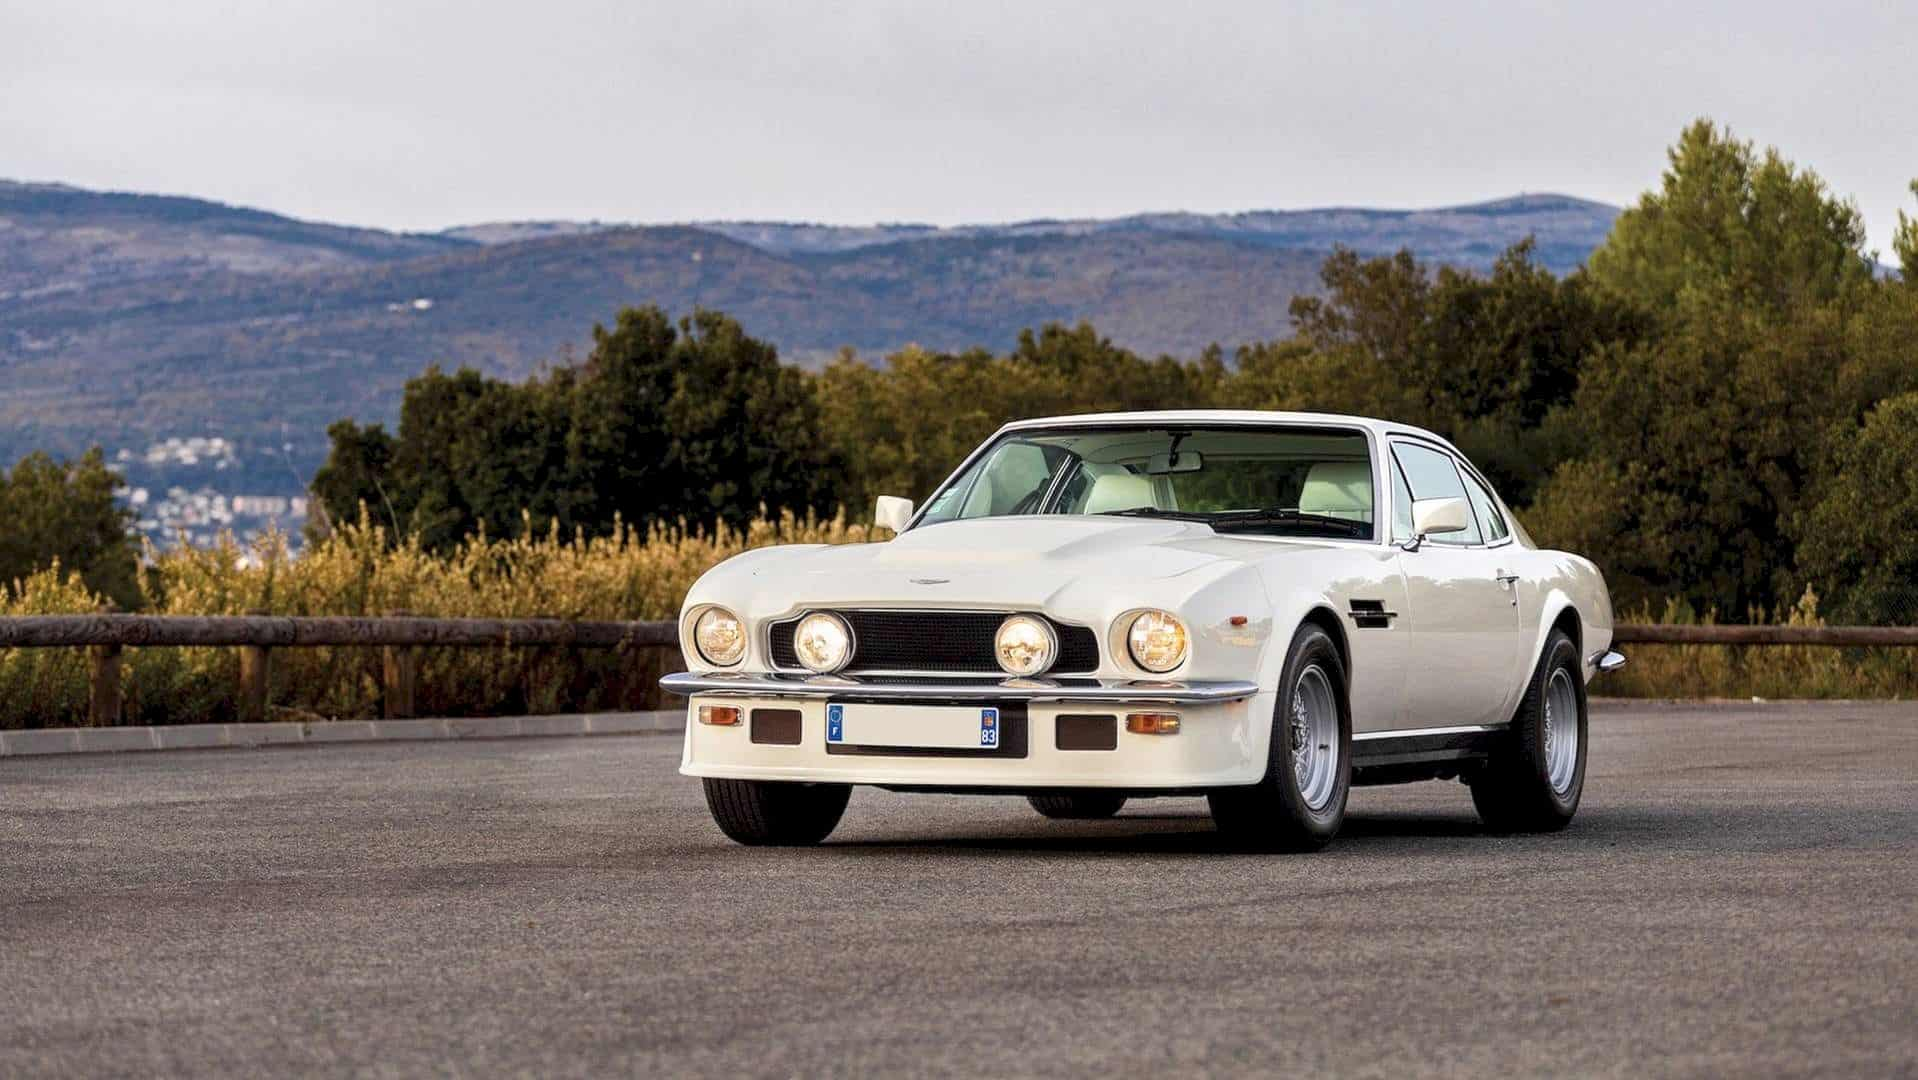 1983 Aston Martin V8 Vantage V580 Oscar India Rewrite The History Of Antique Car